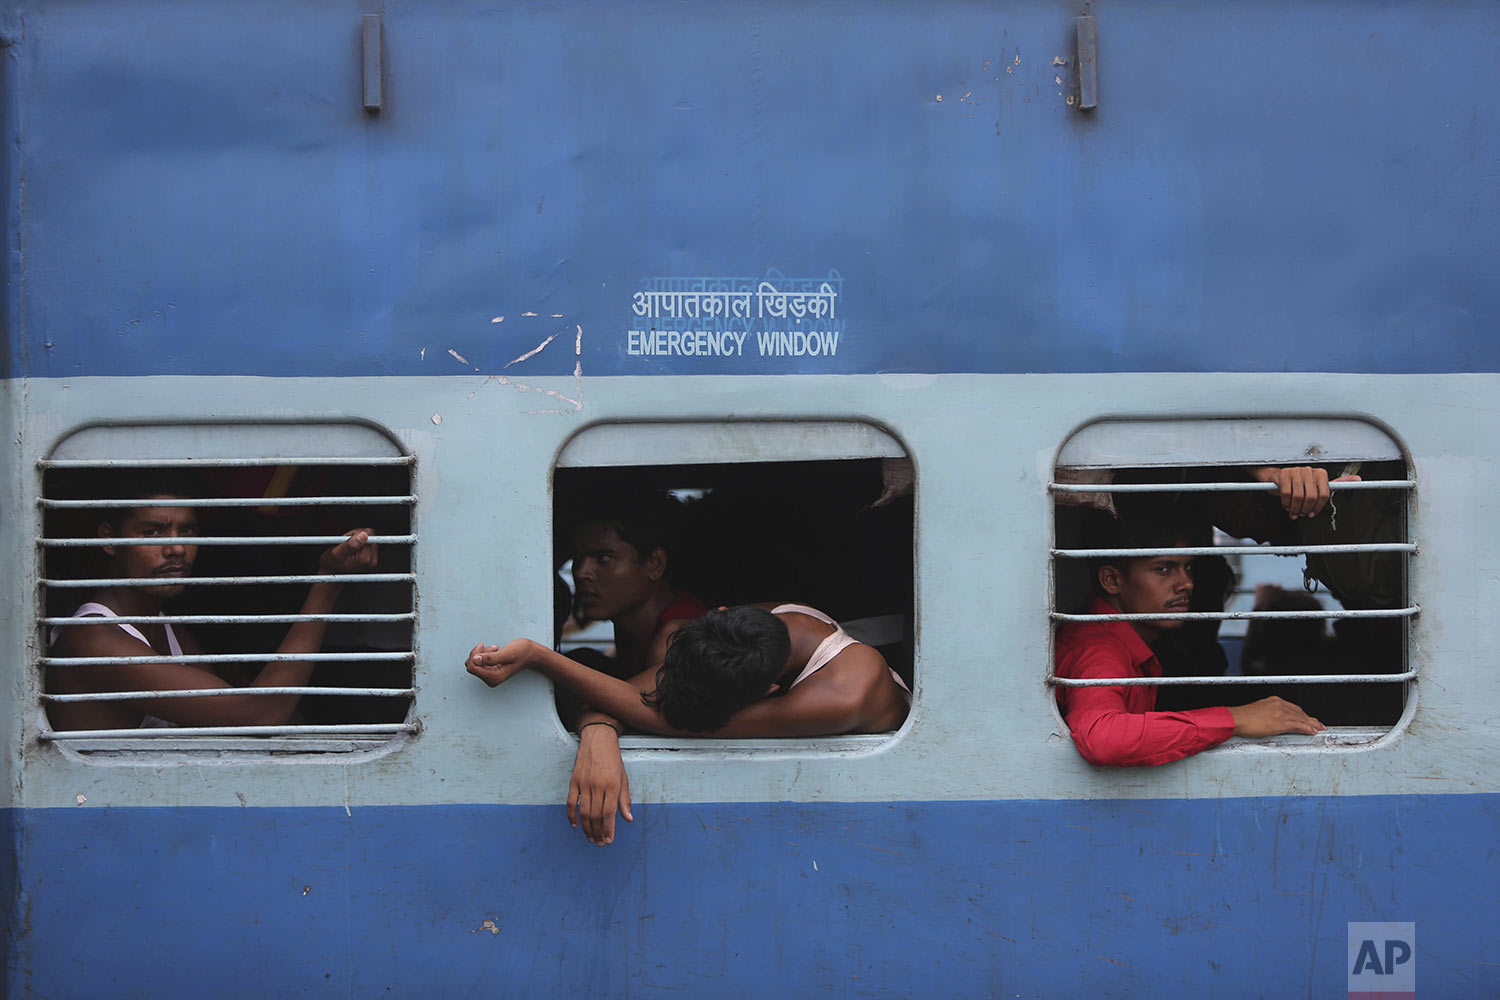 Indian migrant laborers sit inside a train as they prepare to leave the region, at a railway station in Jammu, India, Wednesday, Aug. 7, 2019. (AP Photo/Channi Anand)